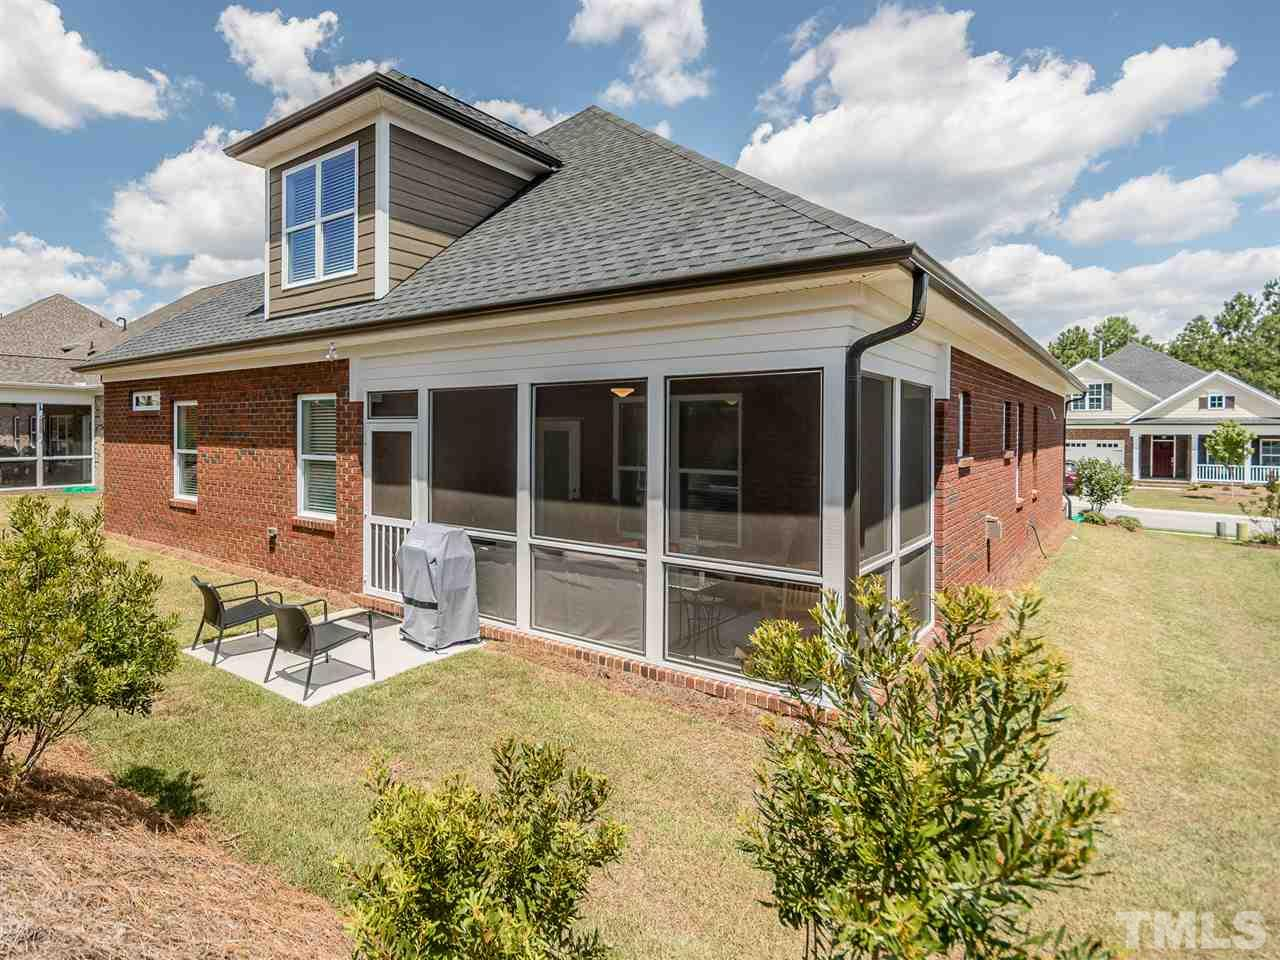 Just enough yard, planting offer privacy and patio for the grill. The home is well thought out and executed. These homeowners have loved their time here.